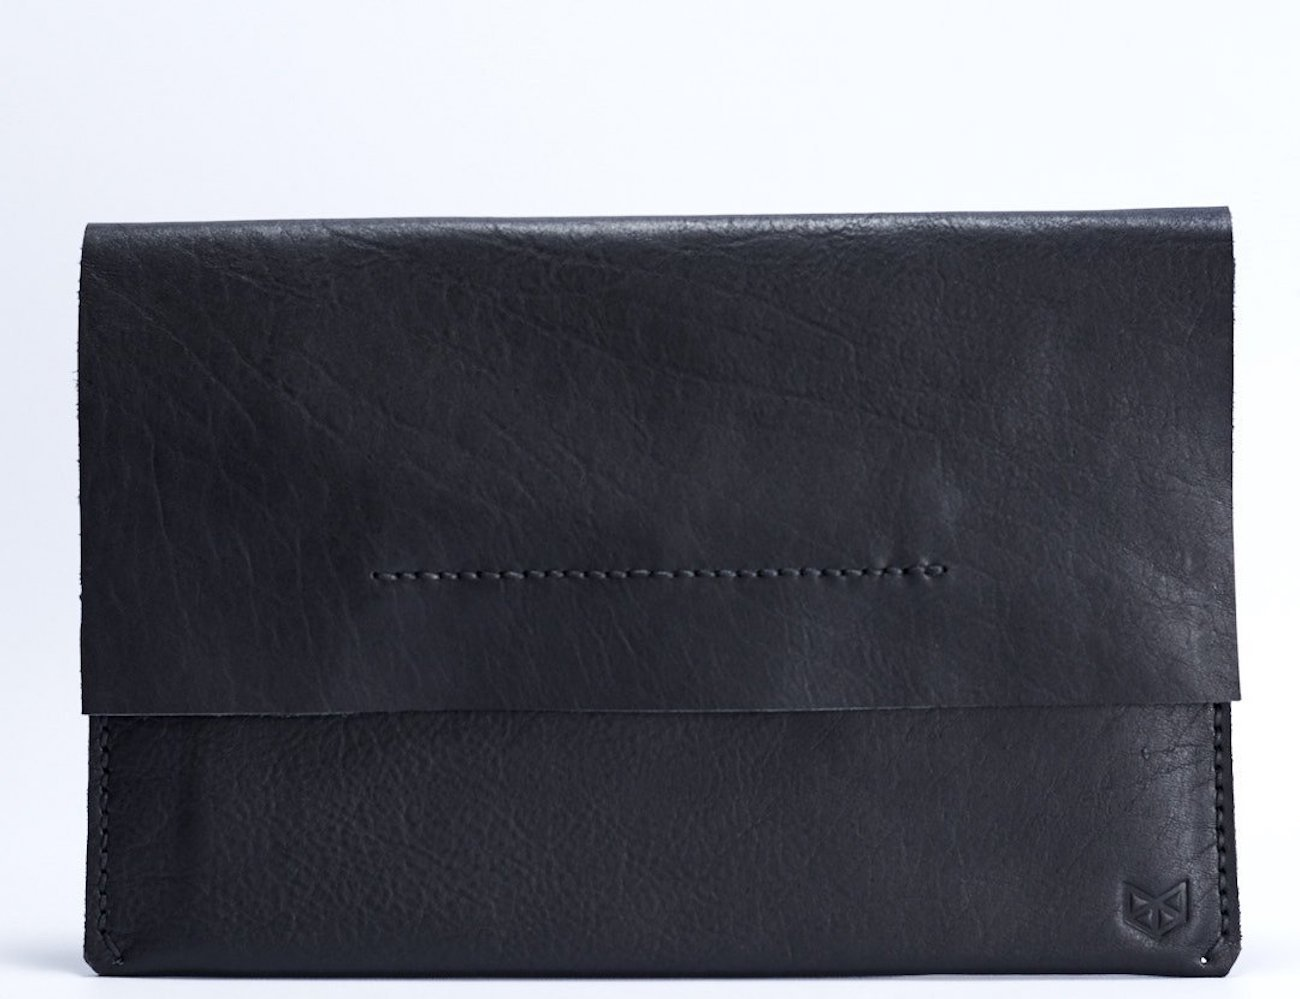 Leather iPad Pro Sleeve by Capra Leather